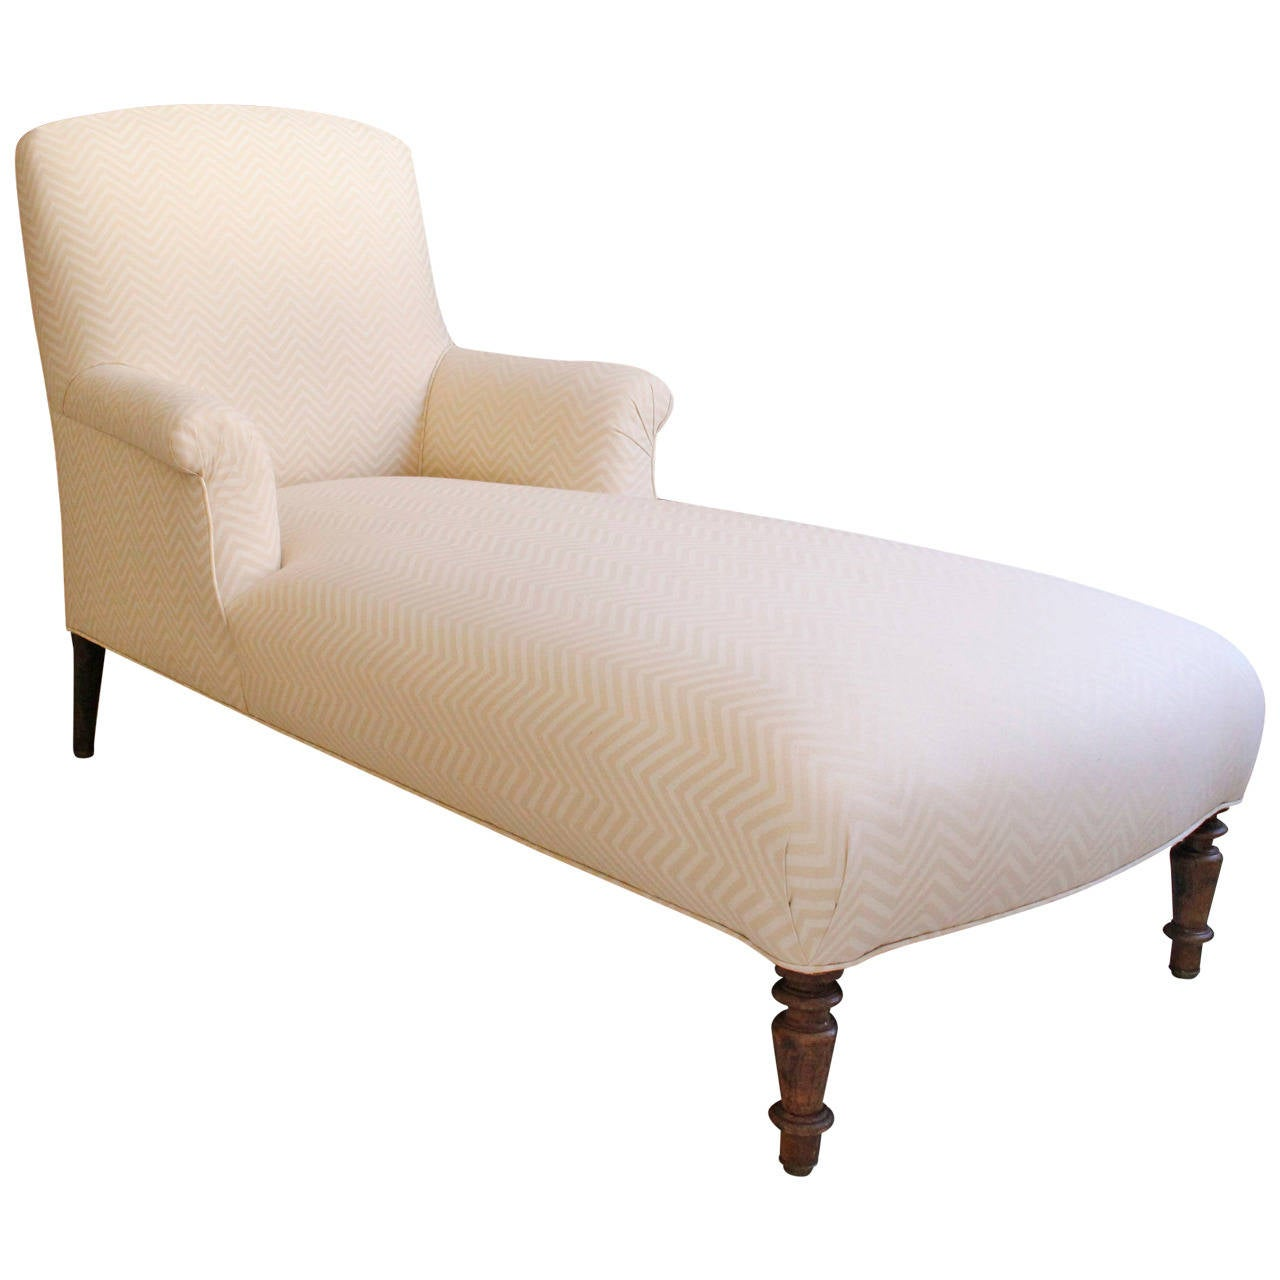 Napoleon iii chaise longue at 1stdibs for Chaise longue furniture